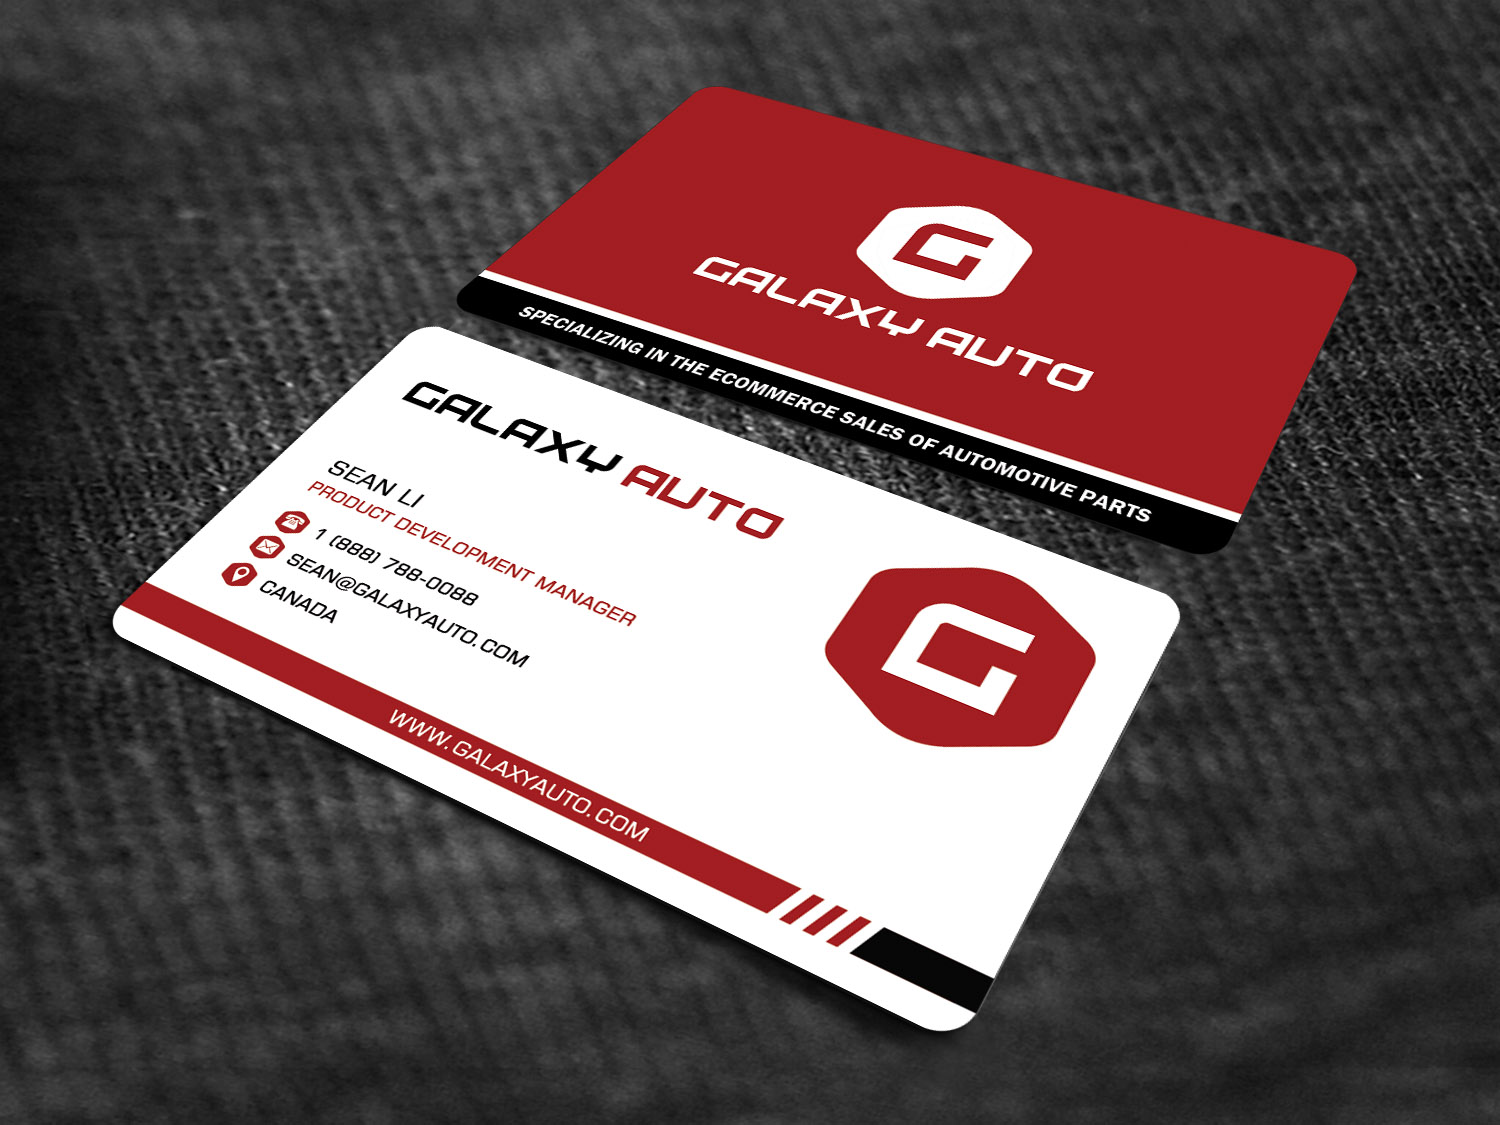 Bold masculine automotive business card design for galaxy auto ltd bold masculine automotive business card design for galaxy auto ltd in canada design 16146636 reheart Choice Image